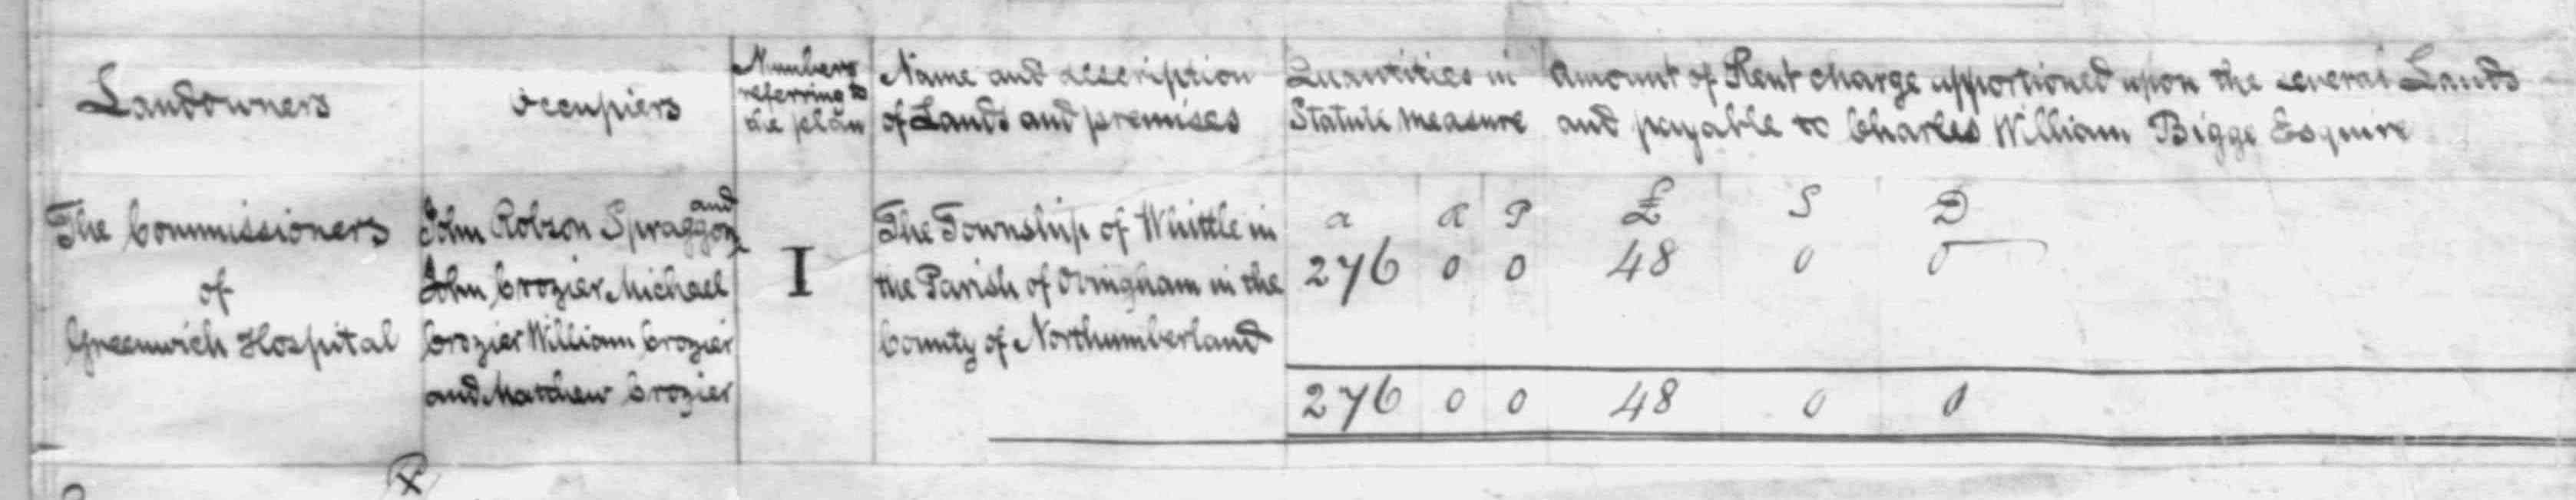 A detail from the tithe apportionment (catalogue reference IR 29/25/476). This includes the names of the landowner and occupiers.